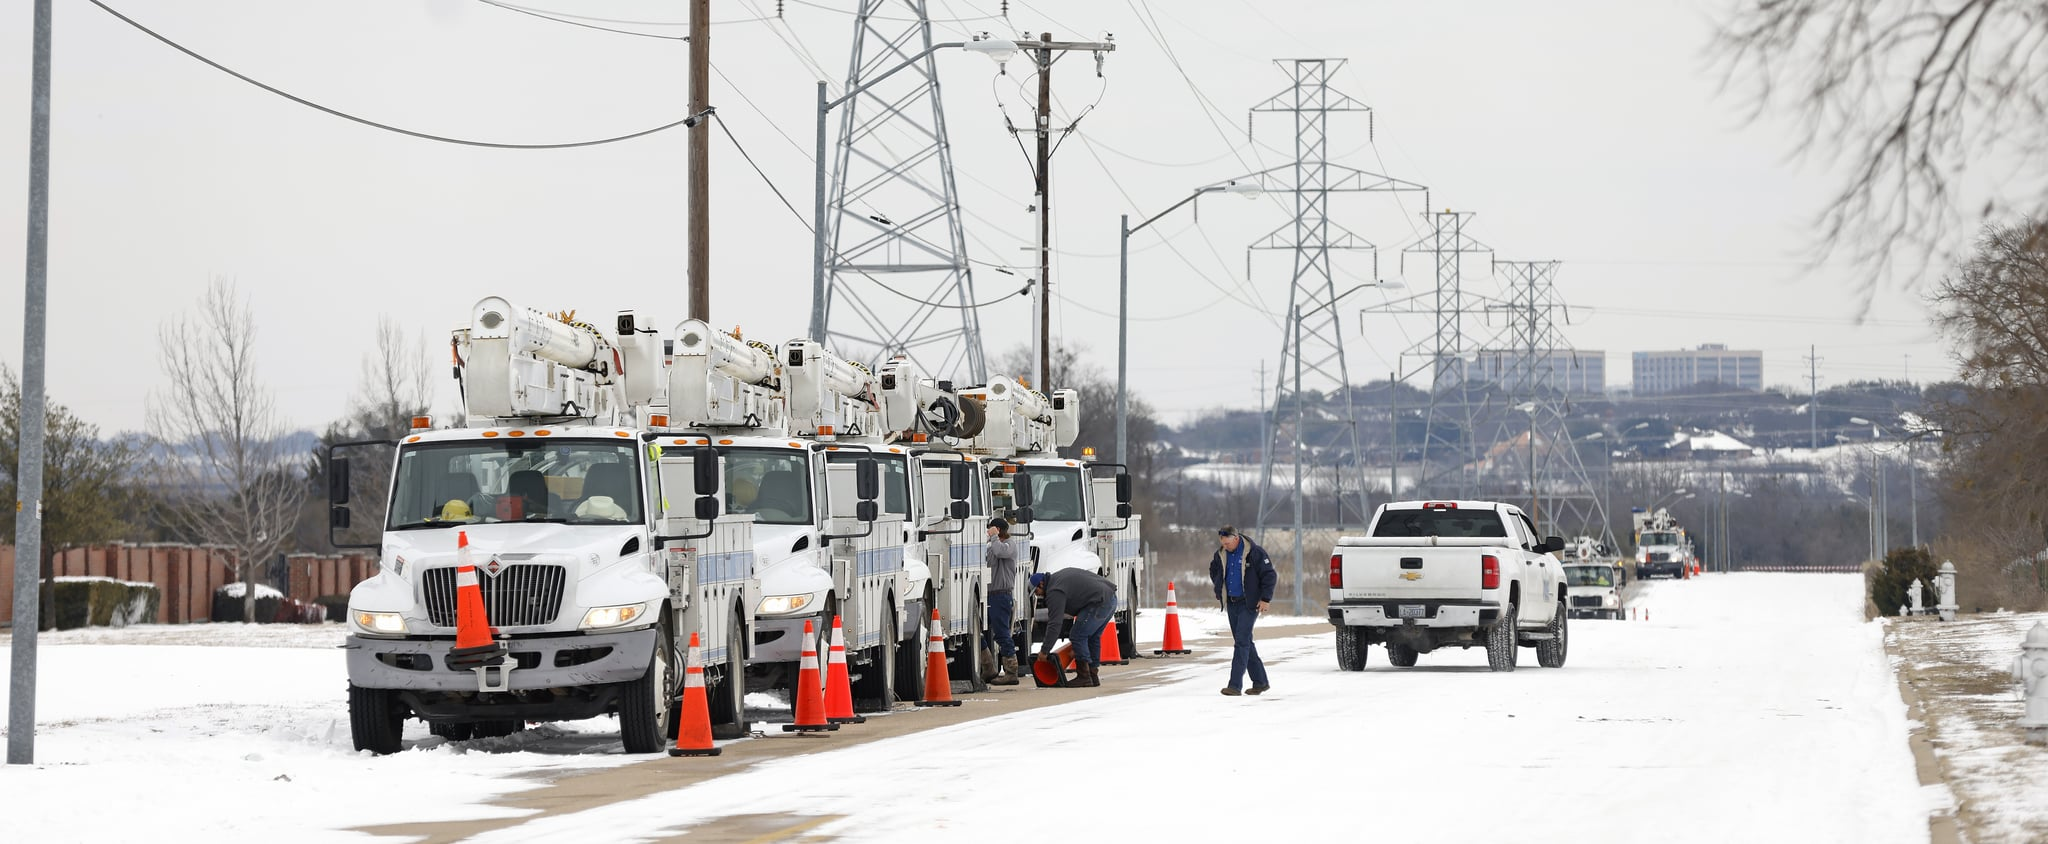 How to Help People Affected by Texas Power Outages, Storm